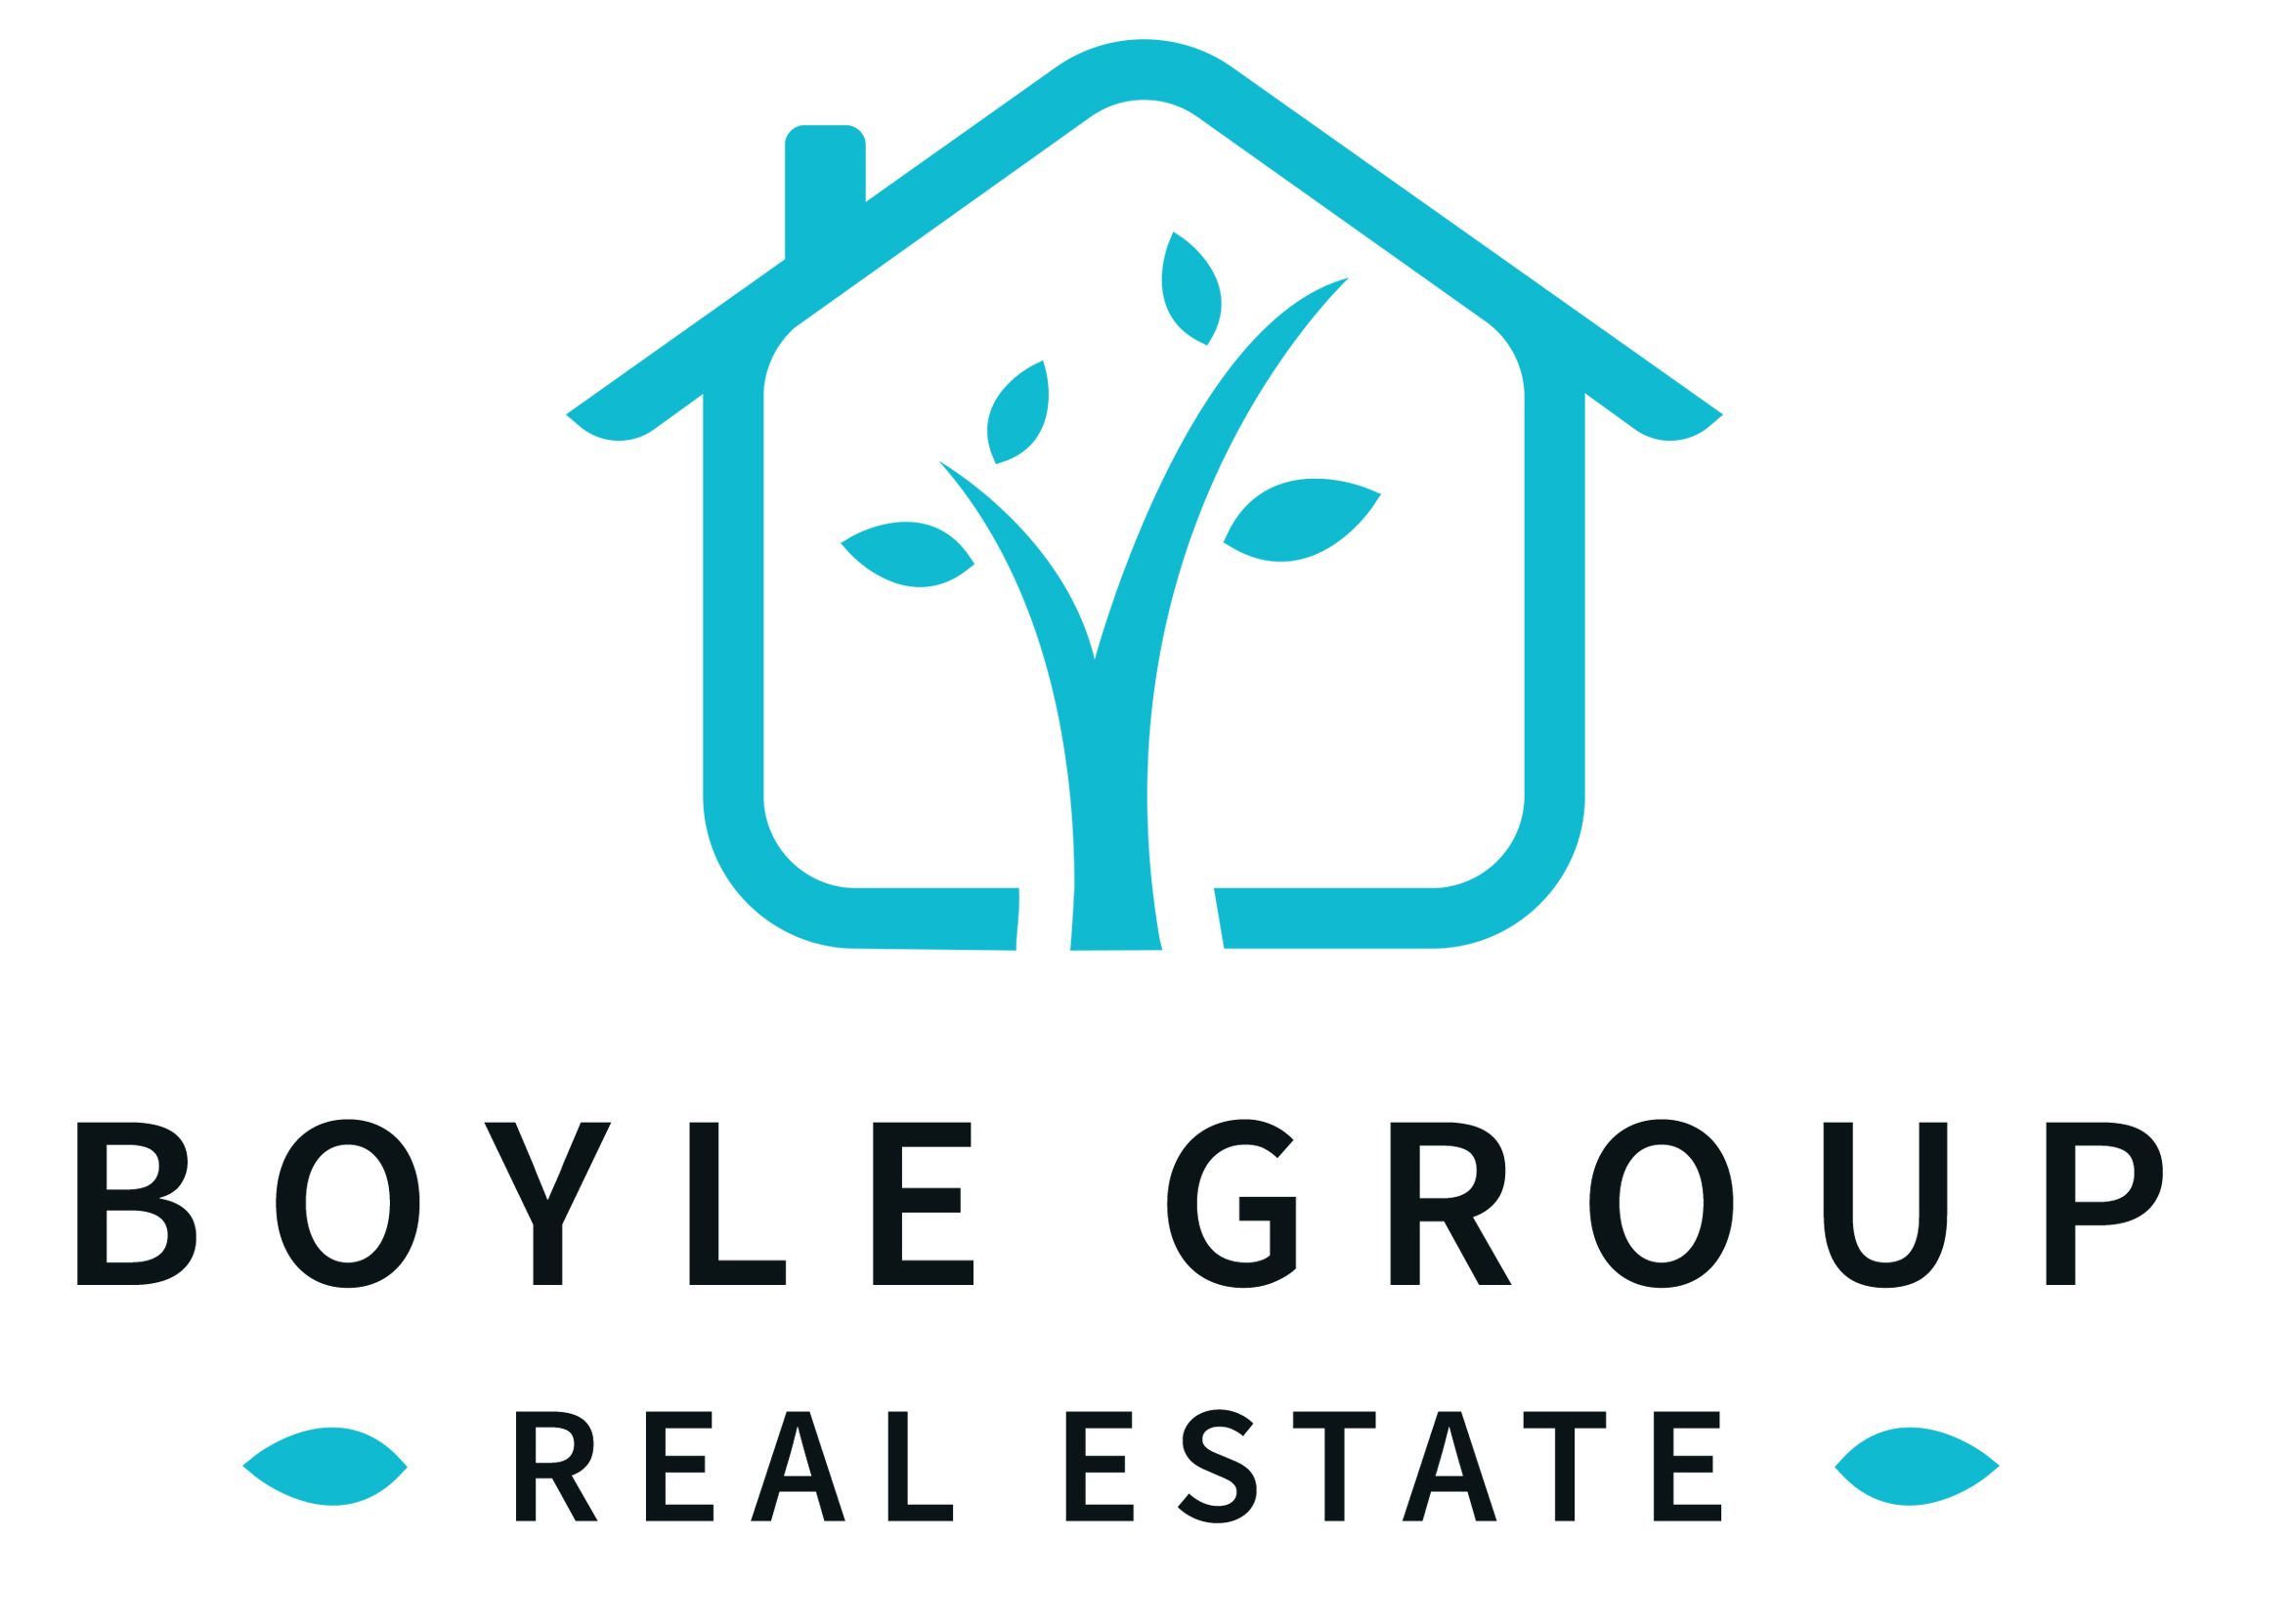 BOYLE GROUP REAL ESTATE